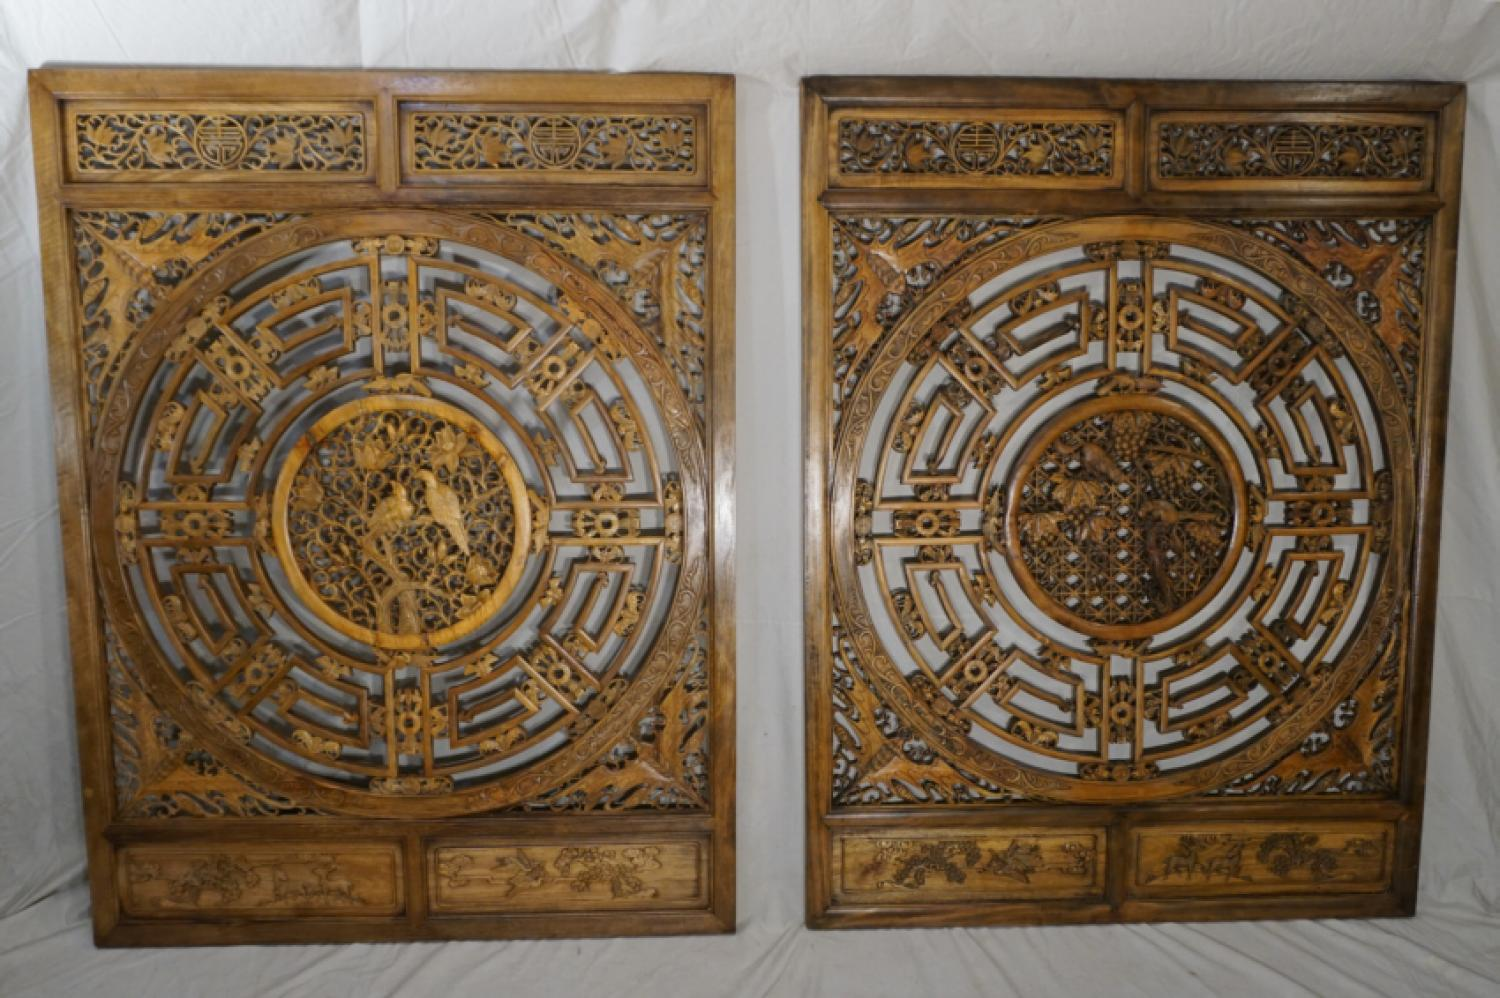 LG antique Chinese carved wood panels c1900